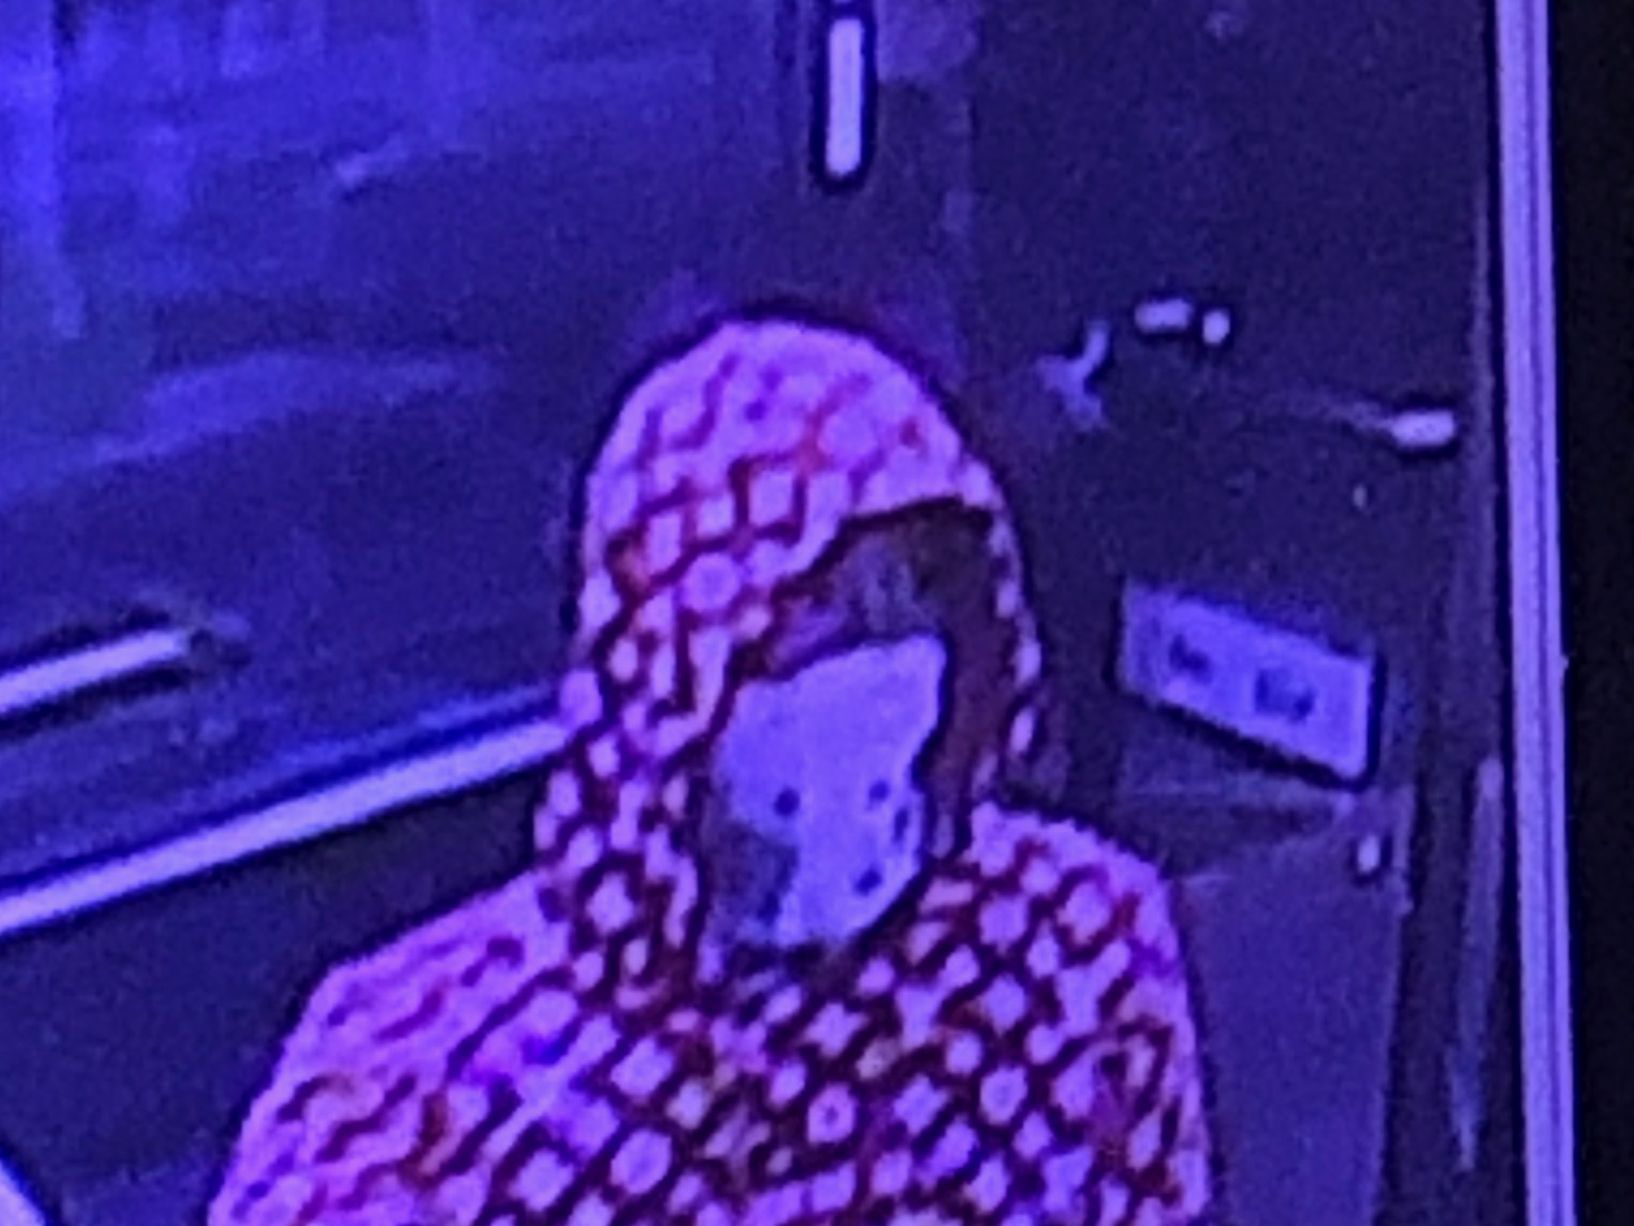 Police: 3 young men wearing bandannas rob Chesterfield 7-Eleven